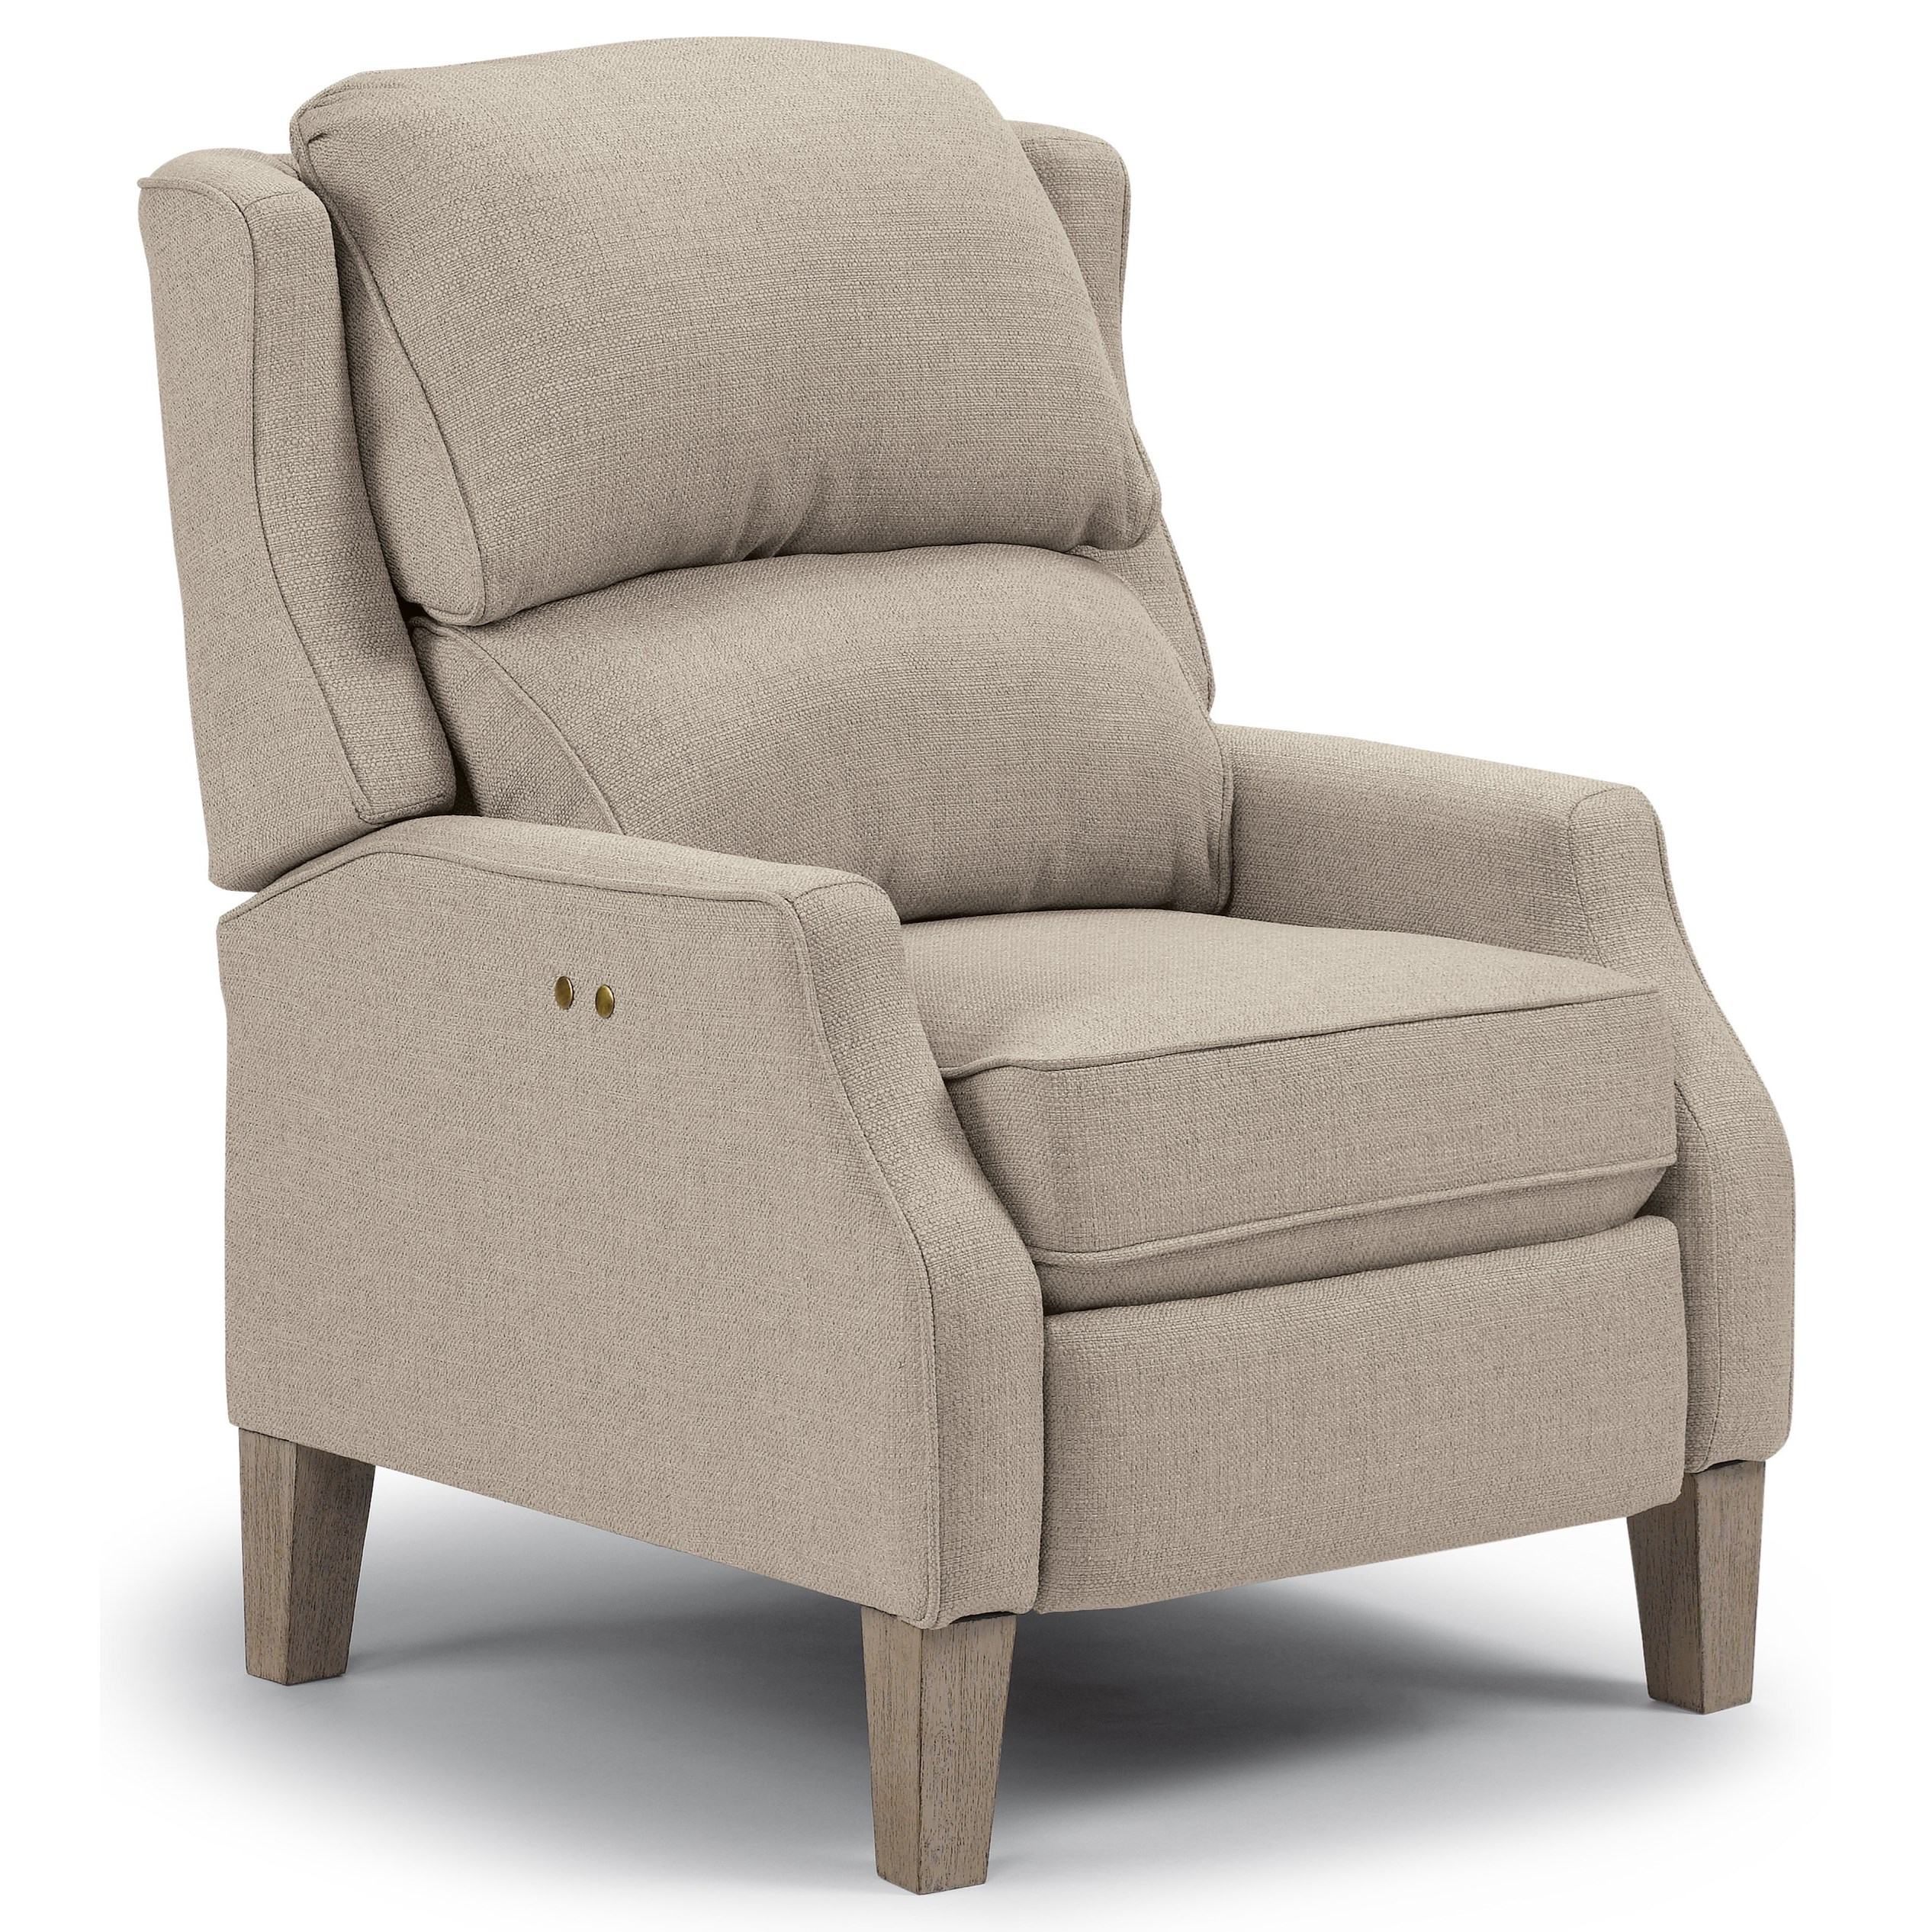 Pauley Three Way Recliner By Best Home Furnishings Wolf And Gardiner Wolf Furniture